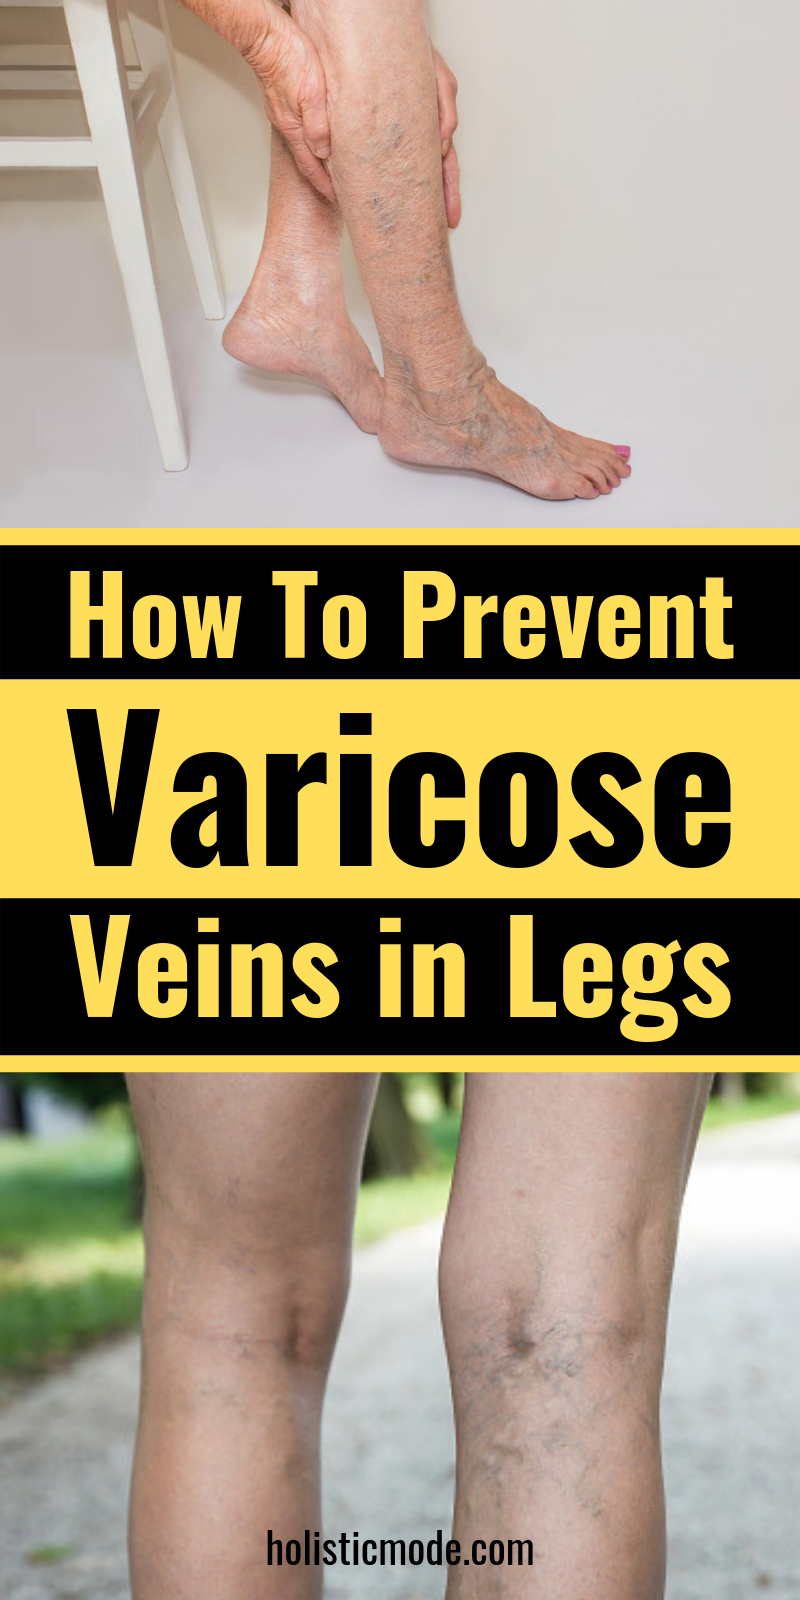 Pin on Varicose Veins Treatment, How to Get Rid of